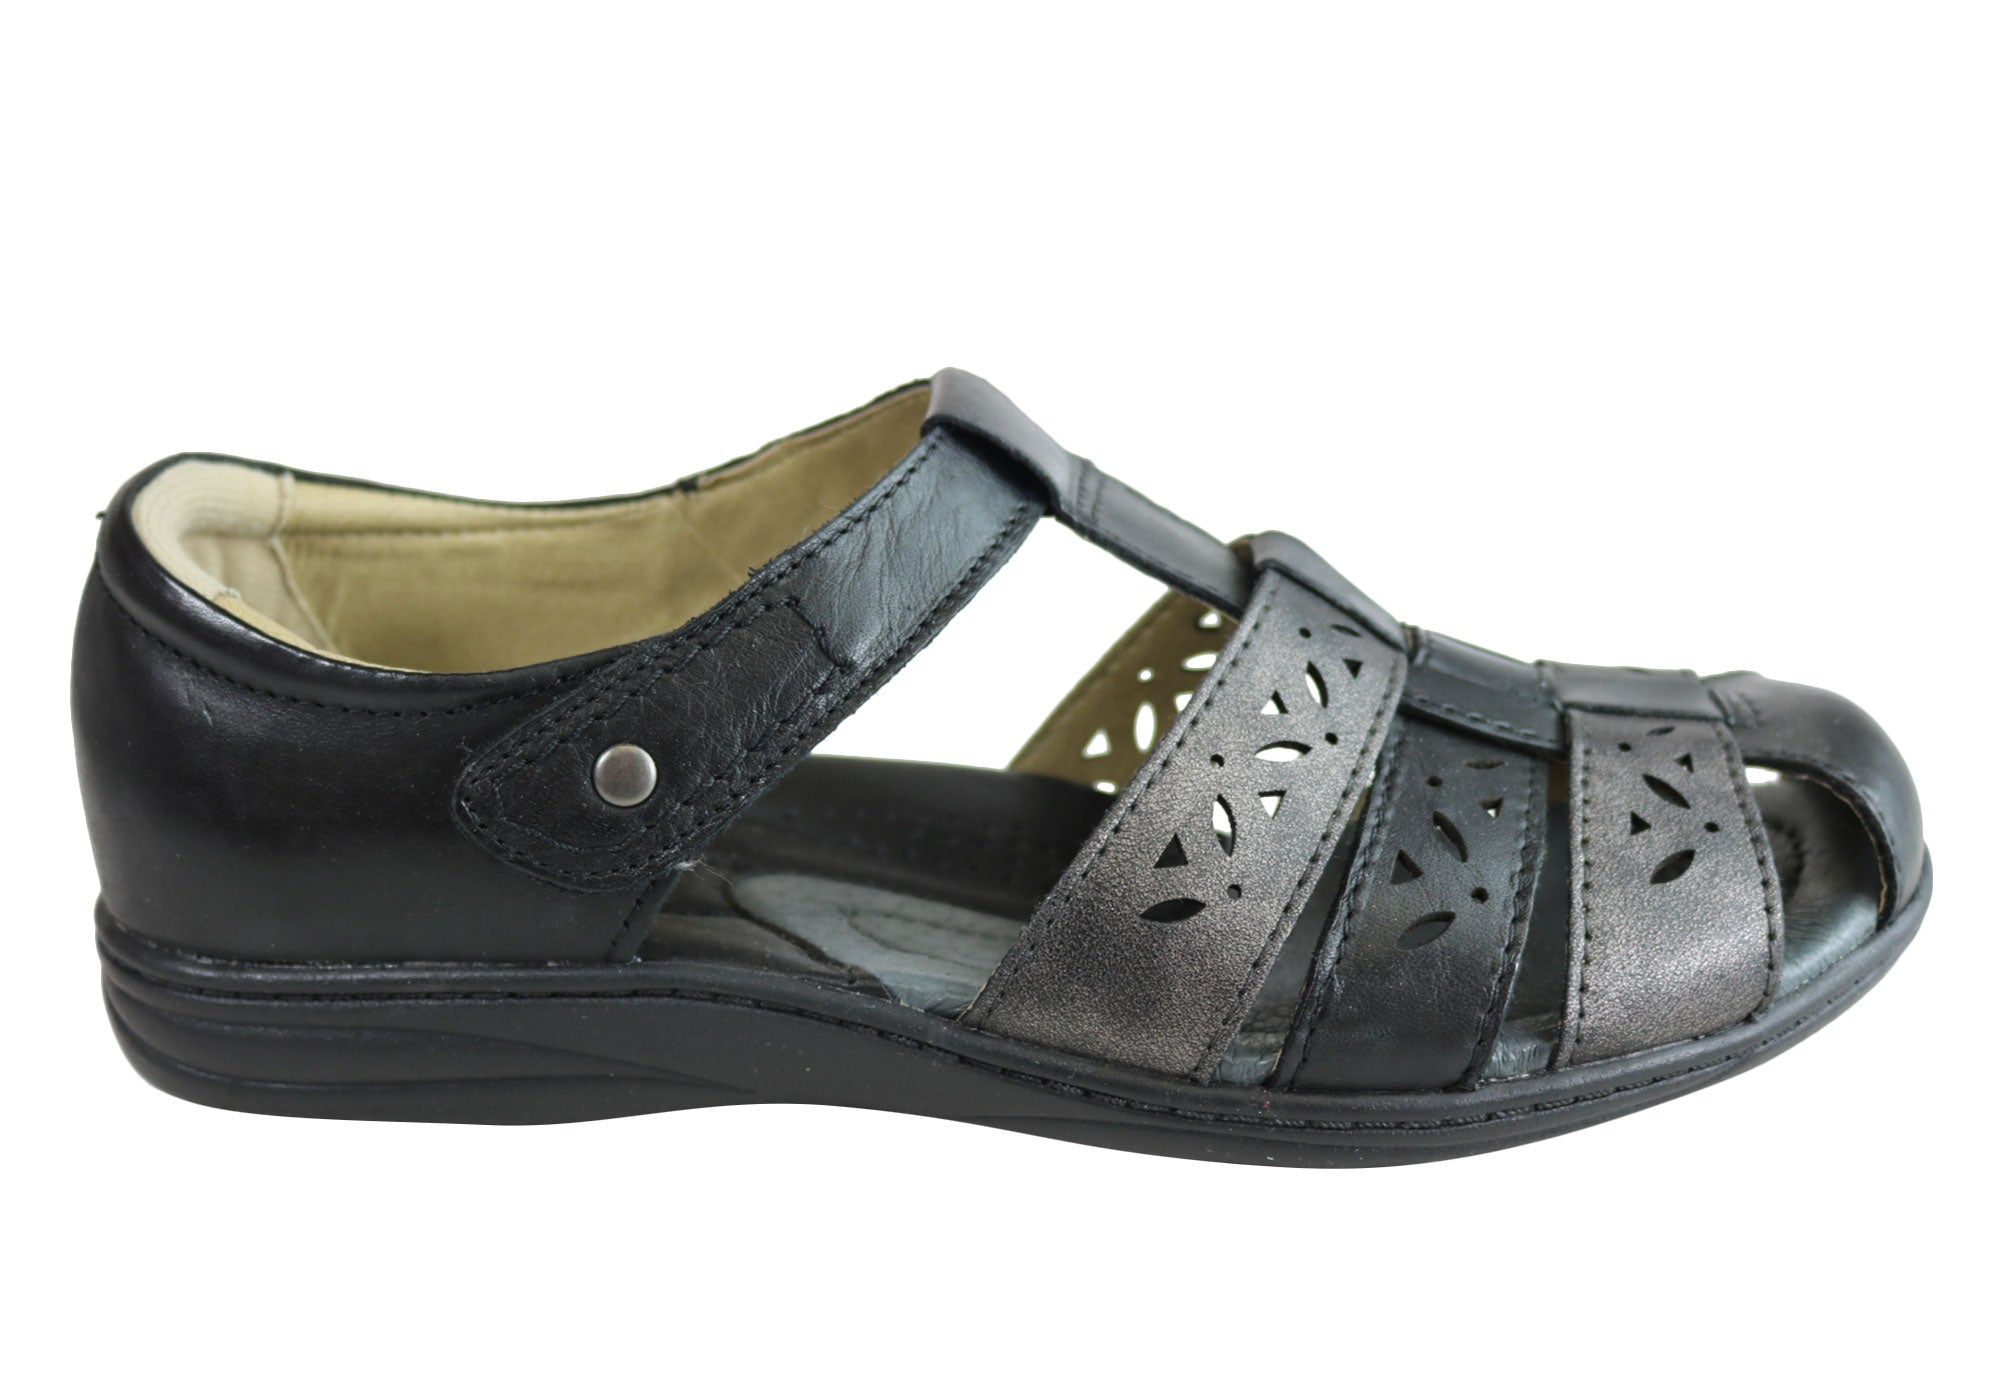 Planet Shoes Jolly Womens Comfortable Leather Closed Toe